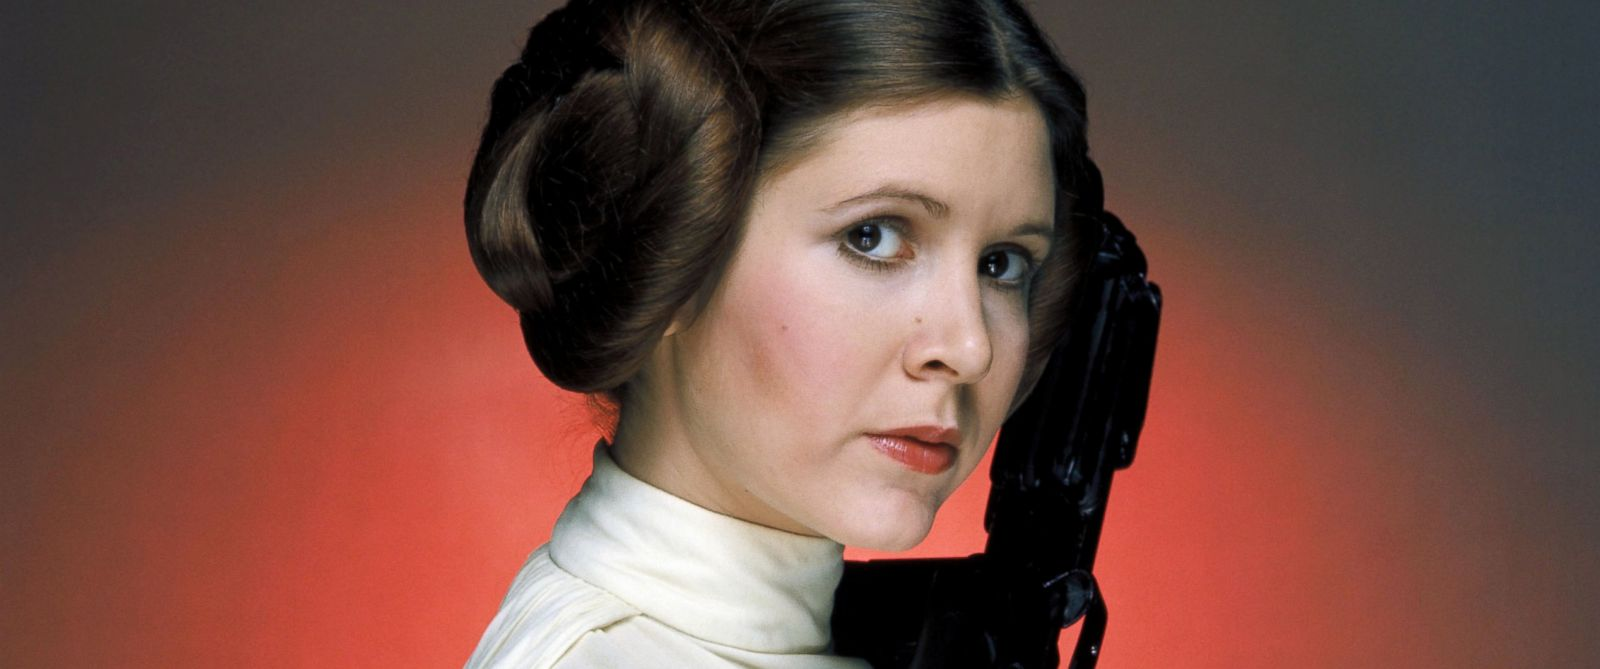 "PHOTO: Carrie Fisher, as Princess Leia, in a promotional image for ""Star Wars: Episode IV - A New Hope."""